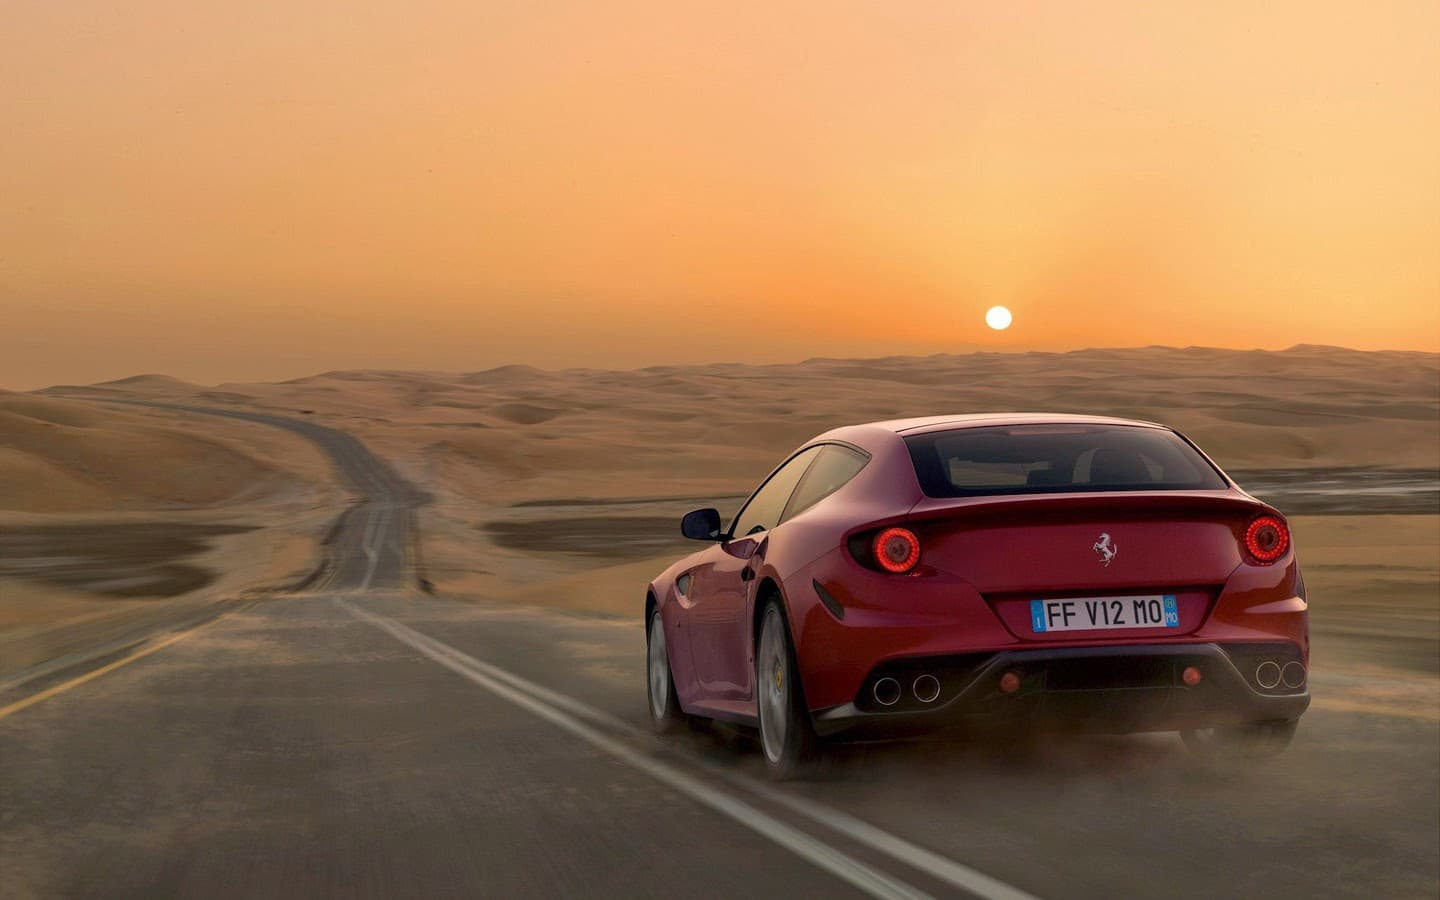 Cars Hd Wallpapers 1080p For Pc Bmw 32 Ferrari Ff Wallpapers Hd Download